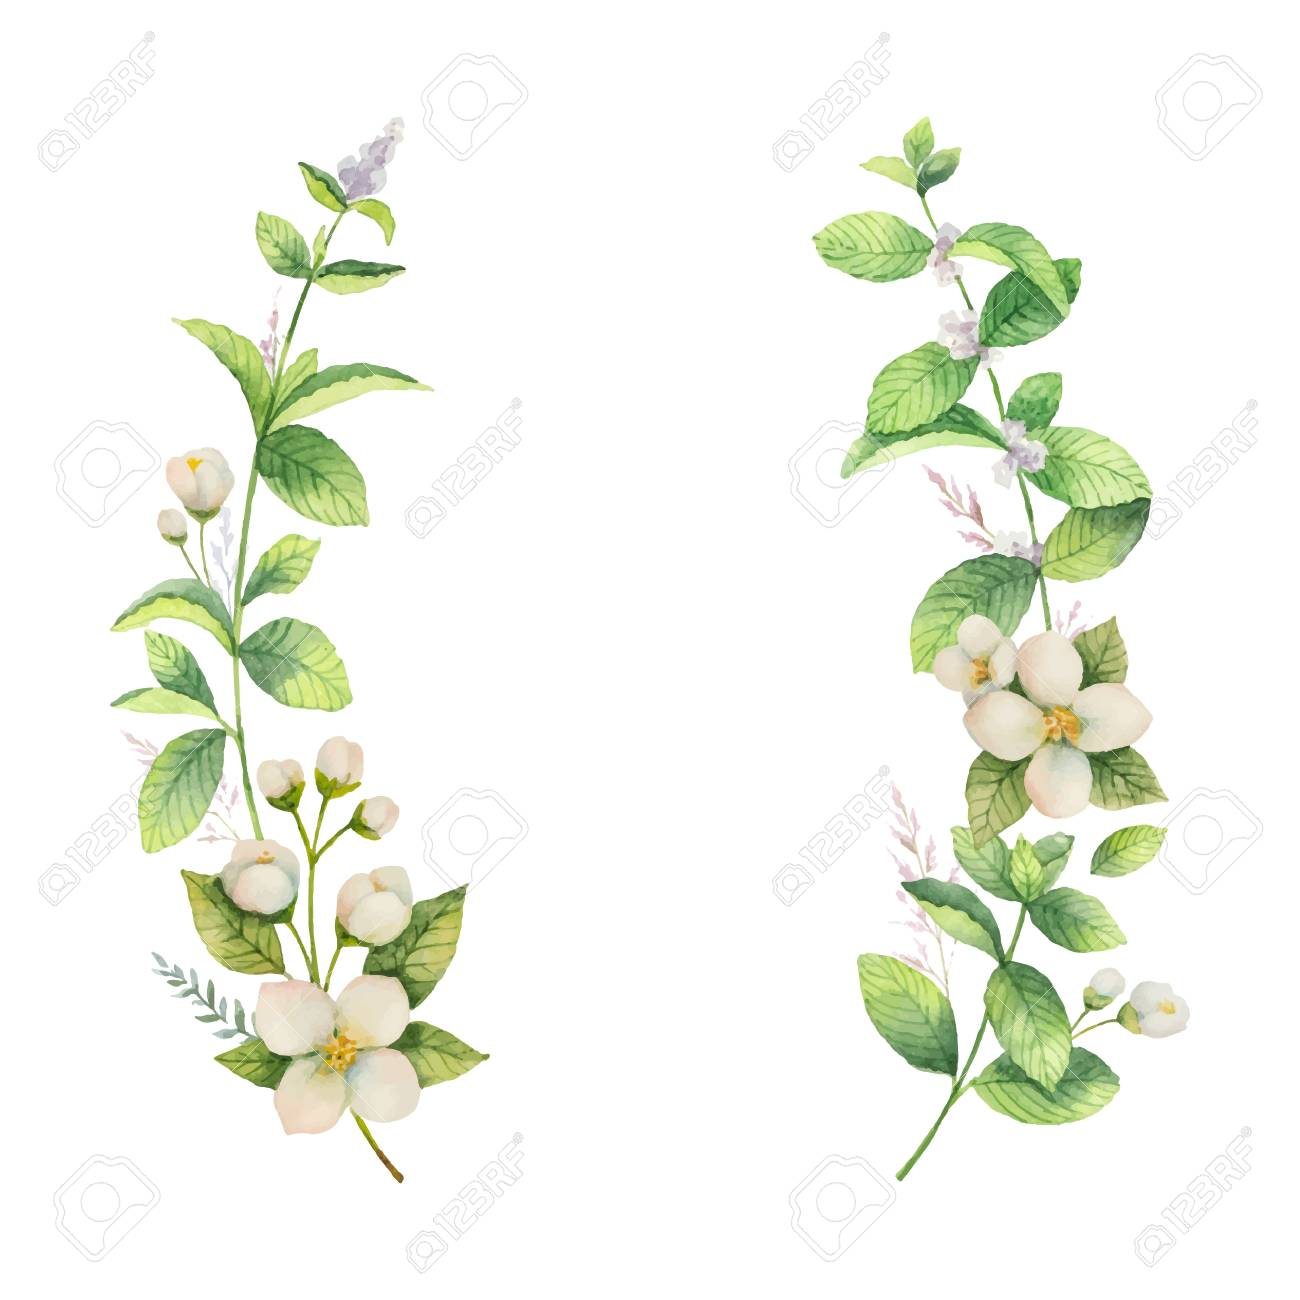 Watercolor vector frame of Jasmine and mint branches on white background. - 90666592